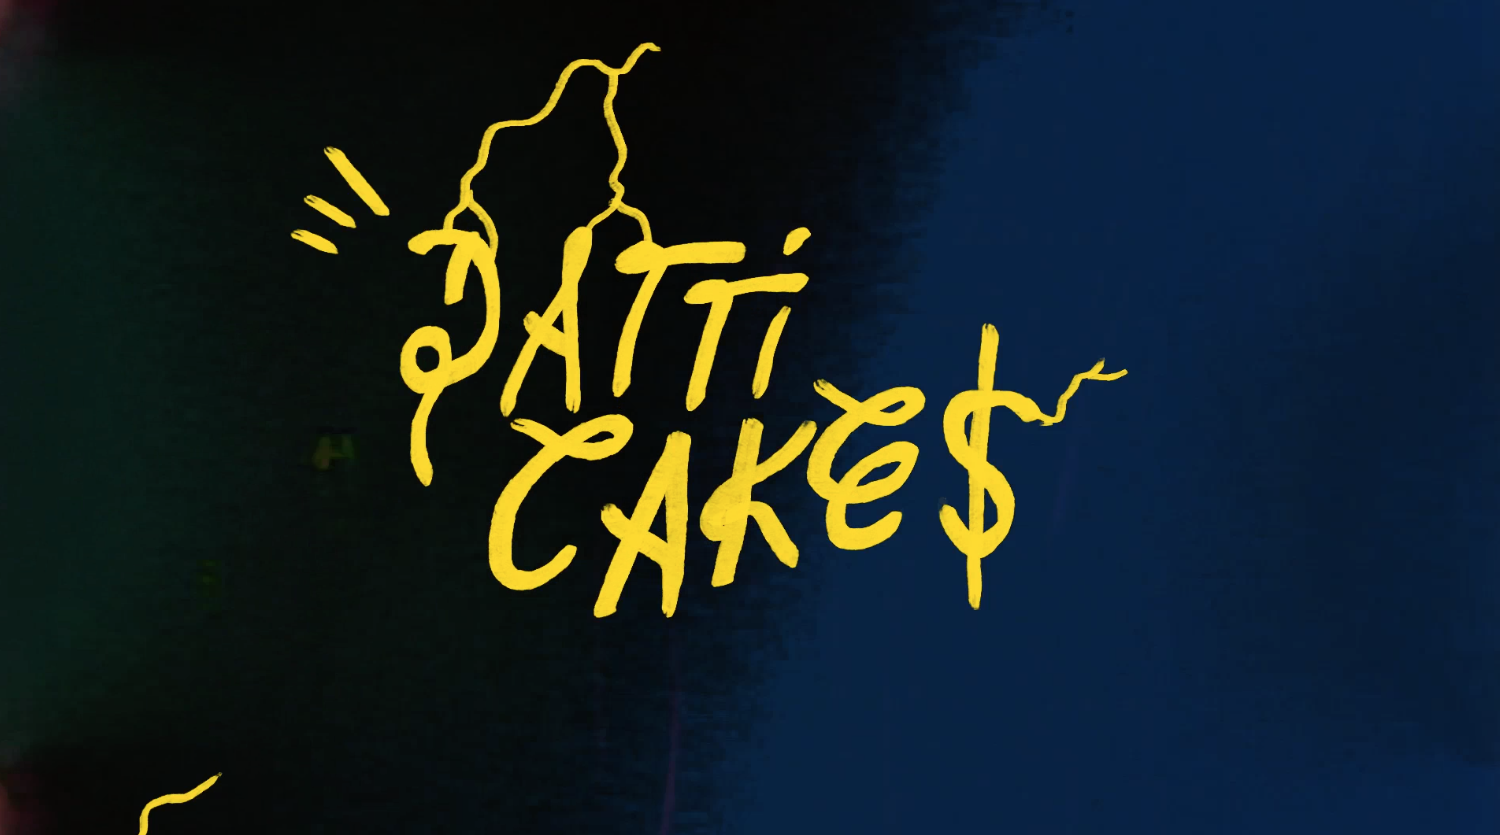 Image Media for PATTI CAKE$ - Lyric Video